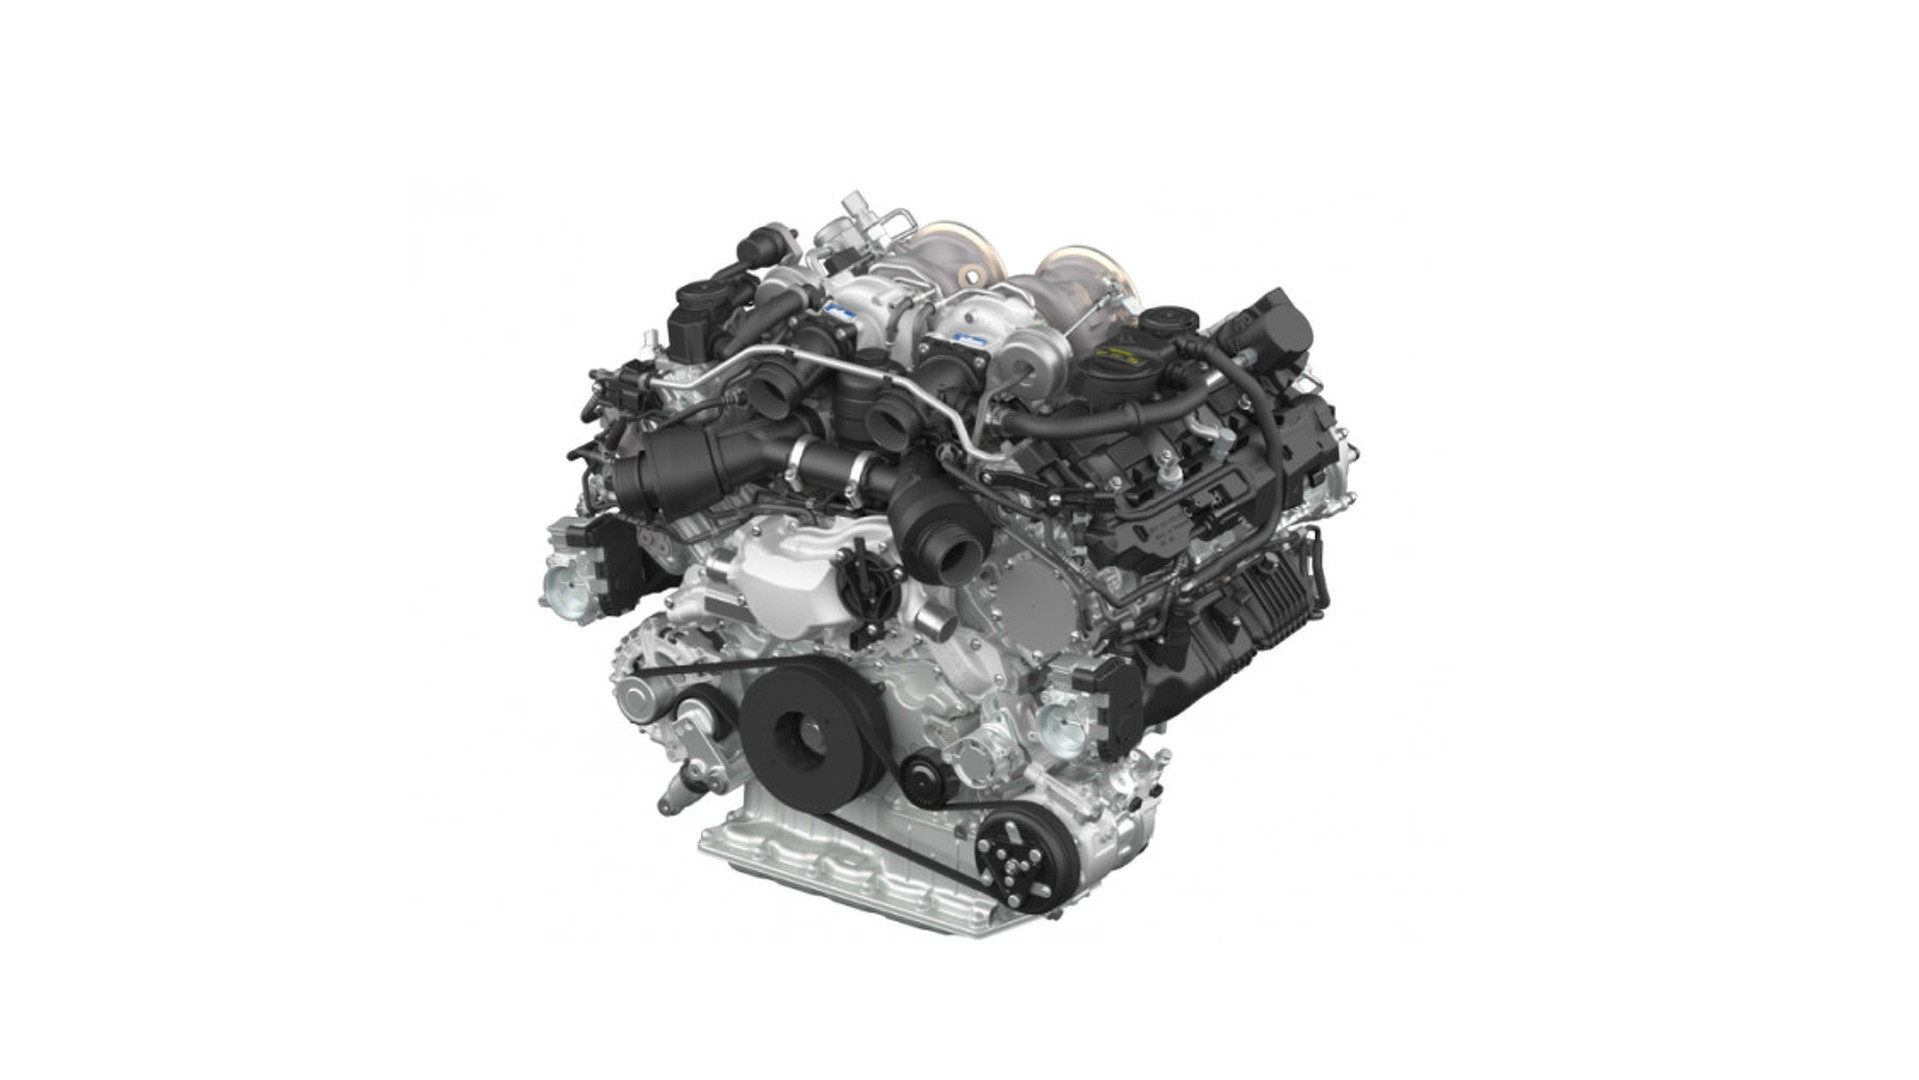 porsche-biturbo-v8-engine